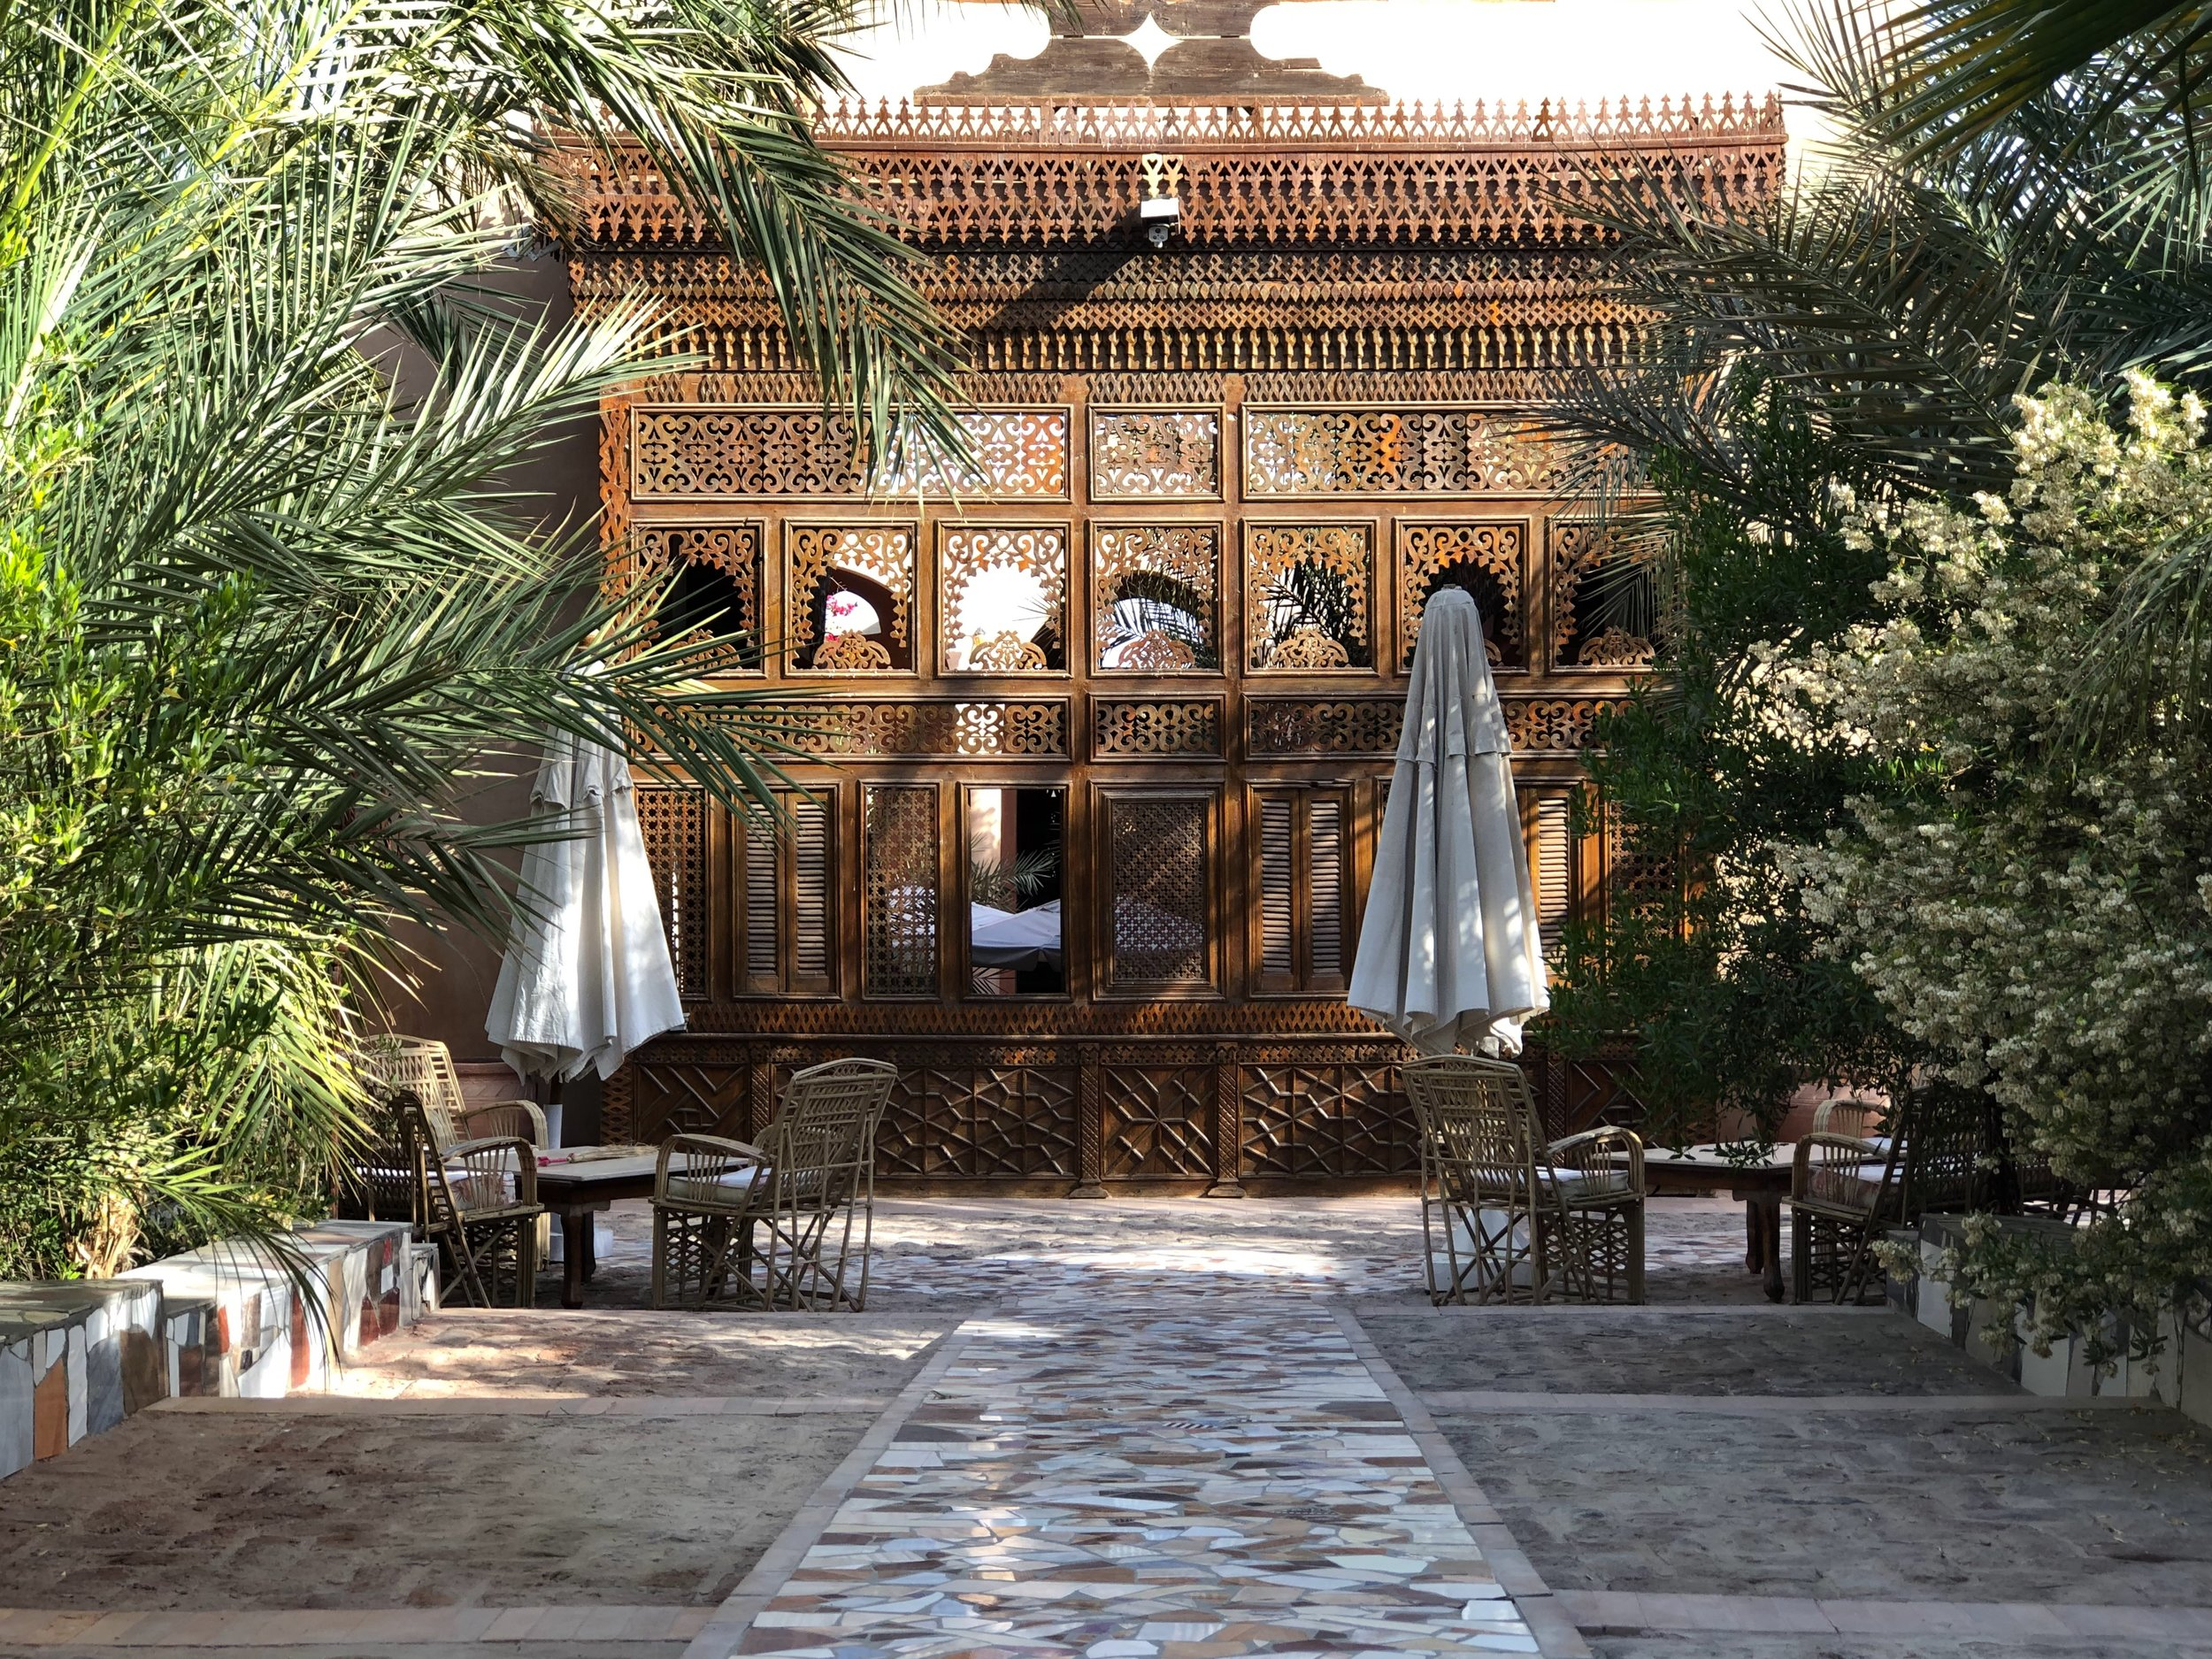 This elaborate woodwork forms one wall of the central courtyard